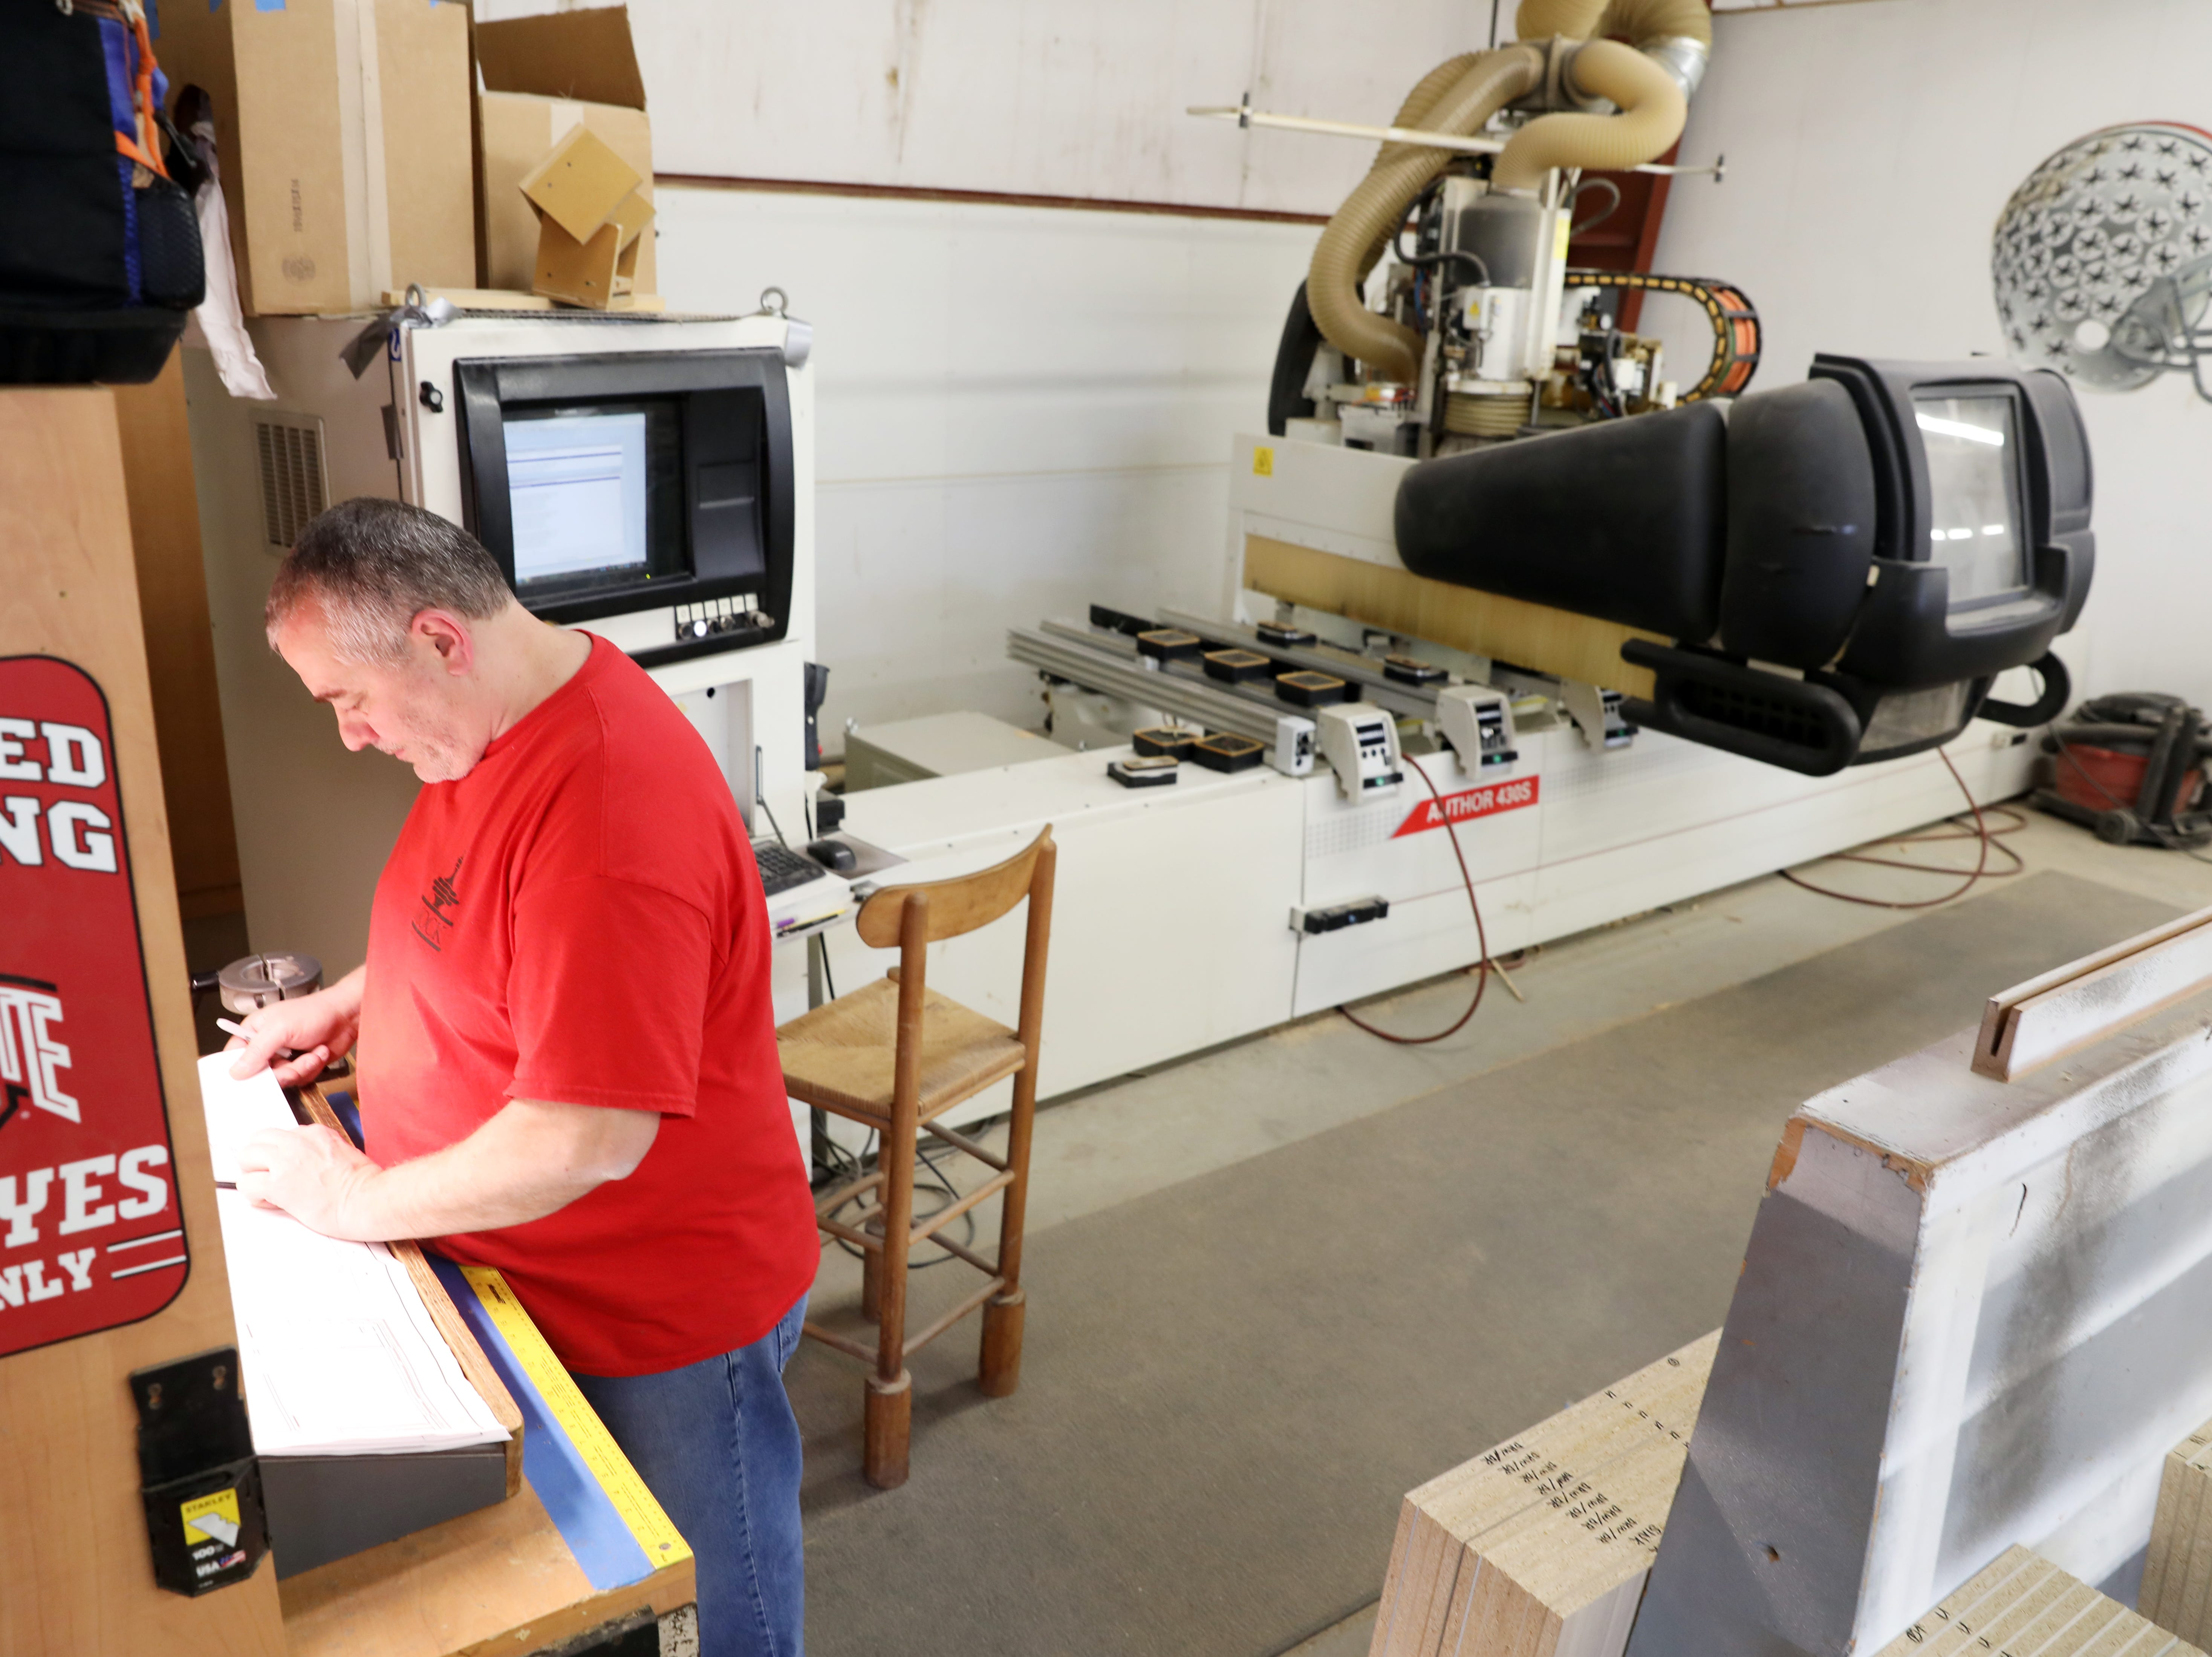 Tim Love looks at plans at a CNC machine at Mock Woodworking.